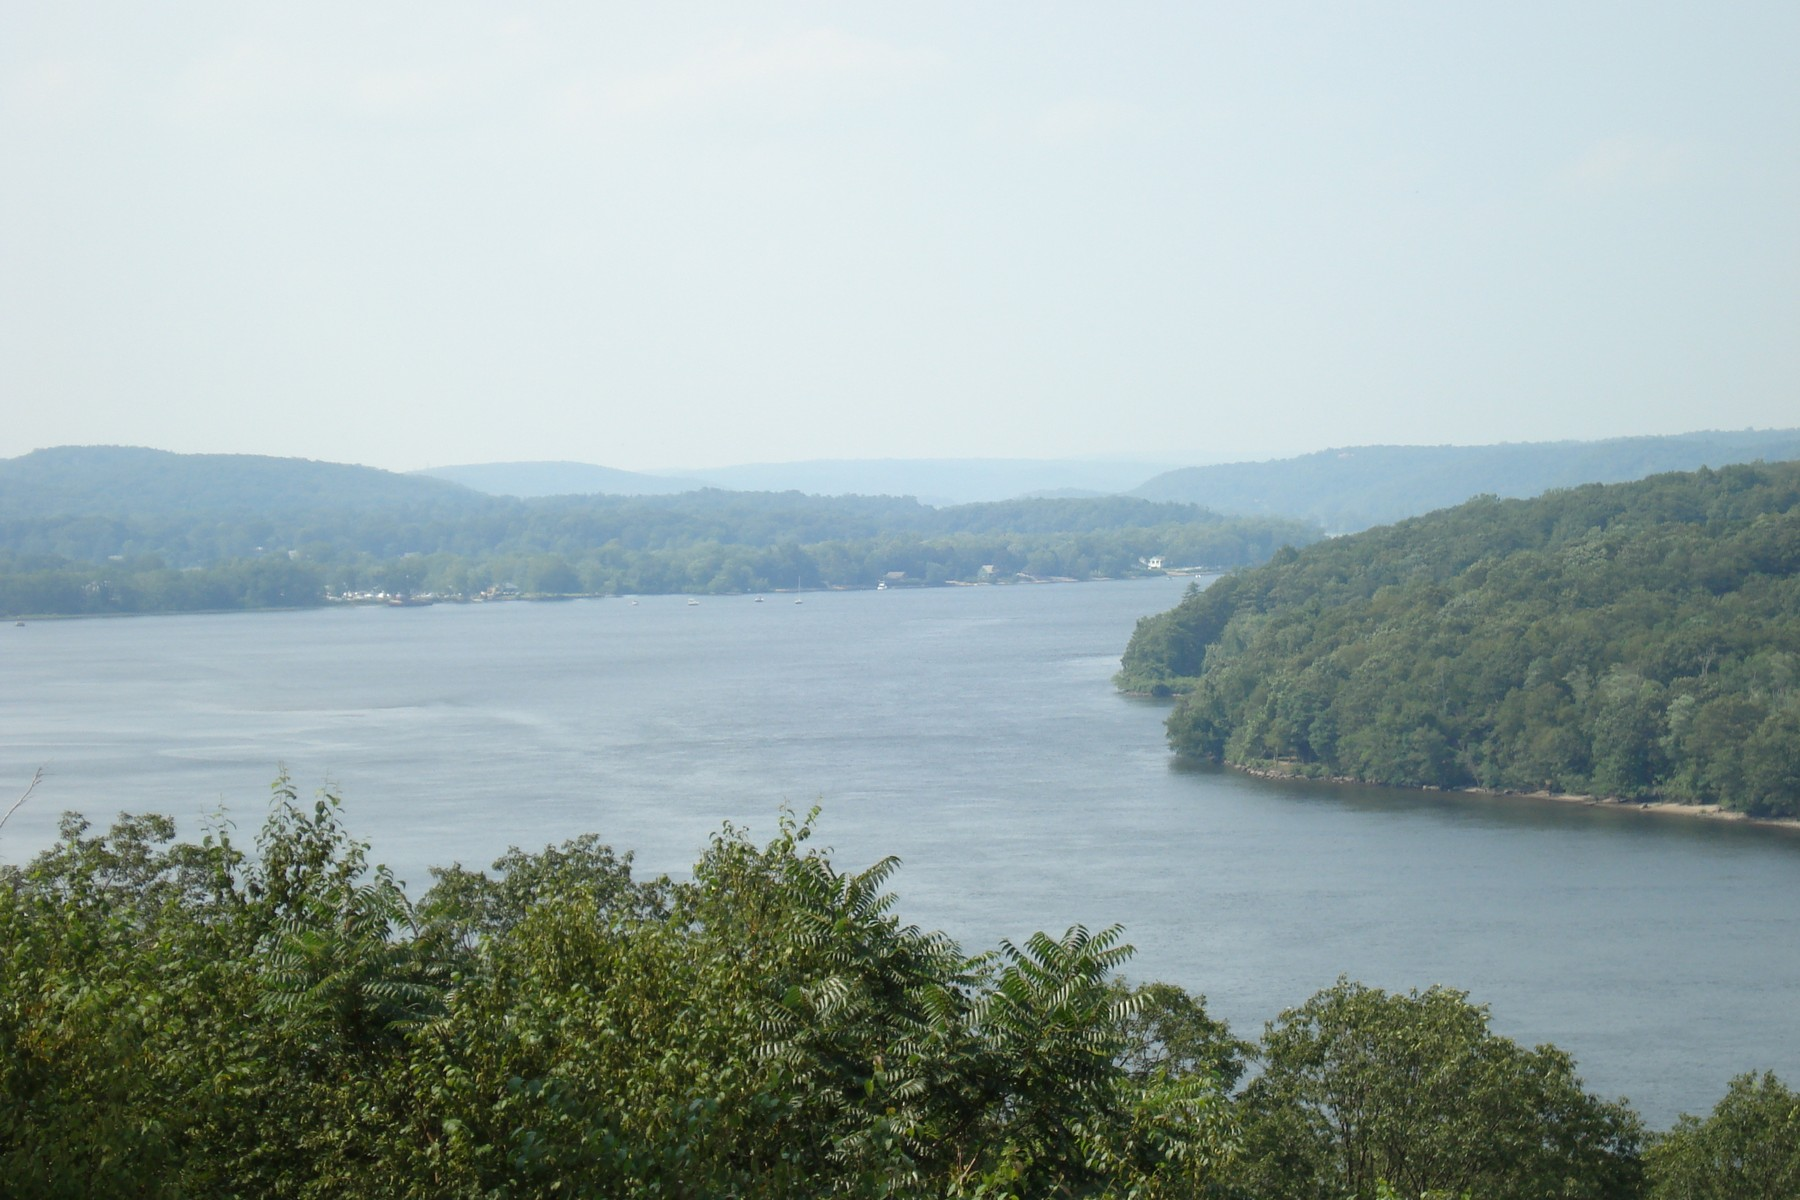 Property For Sale at Complete Remodeled Home - Views of CT River